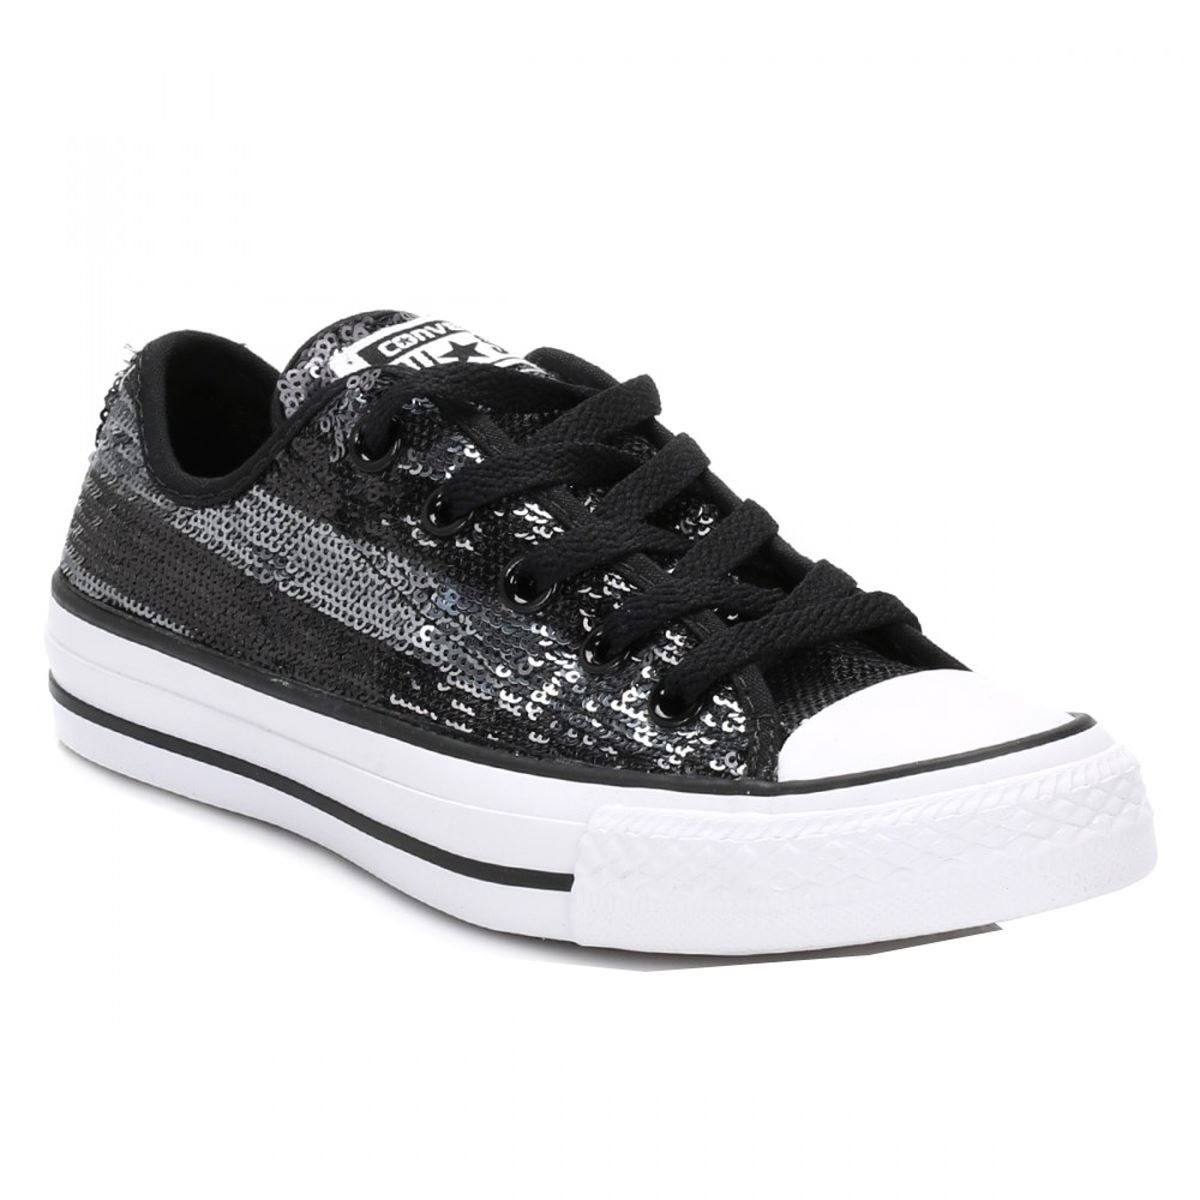 Converse Chuck Taylor All Star Lo Top Black/Silver Womens 6